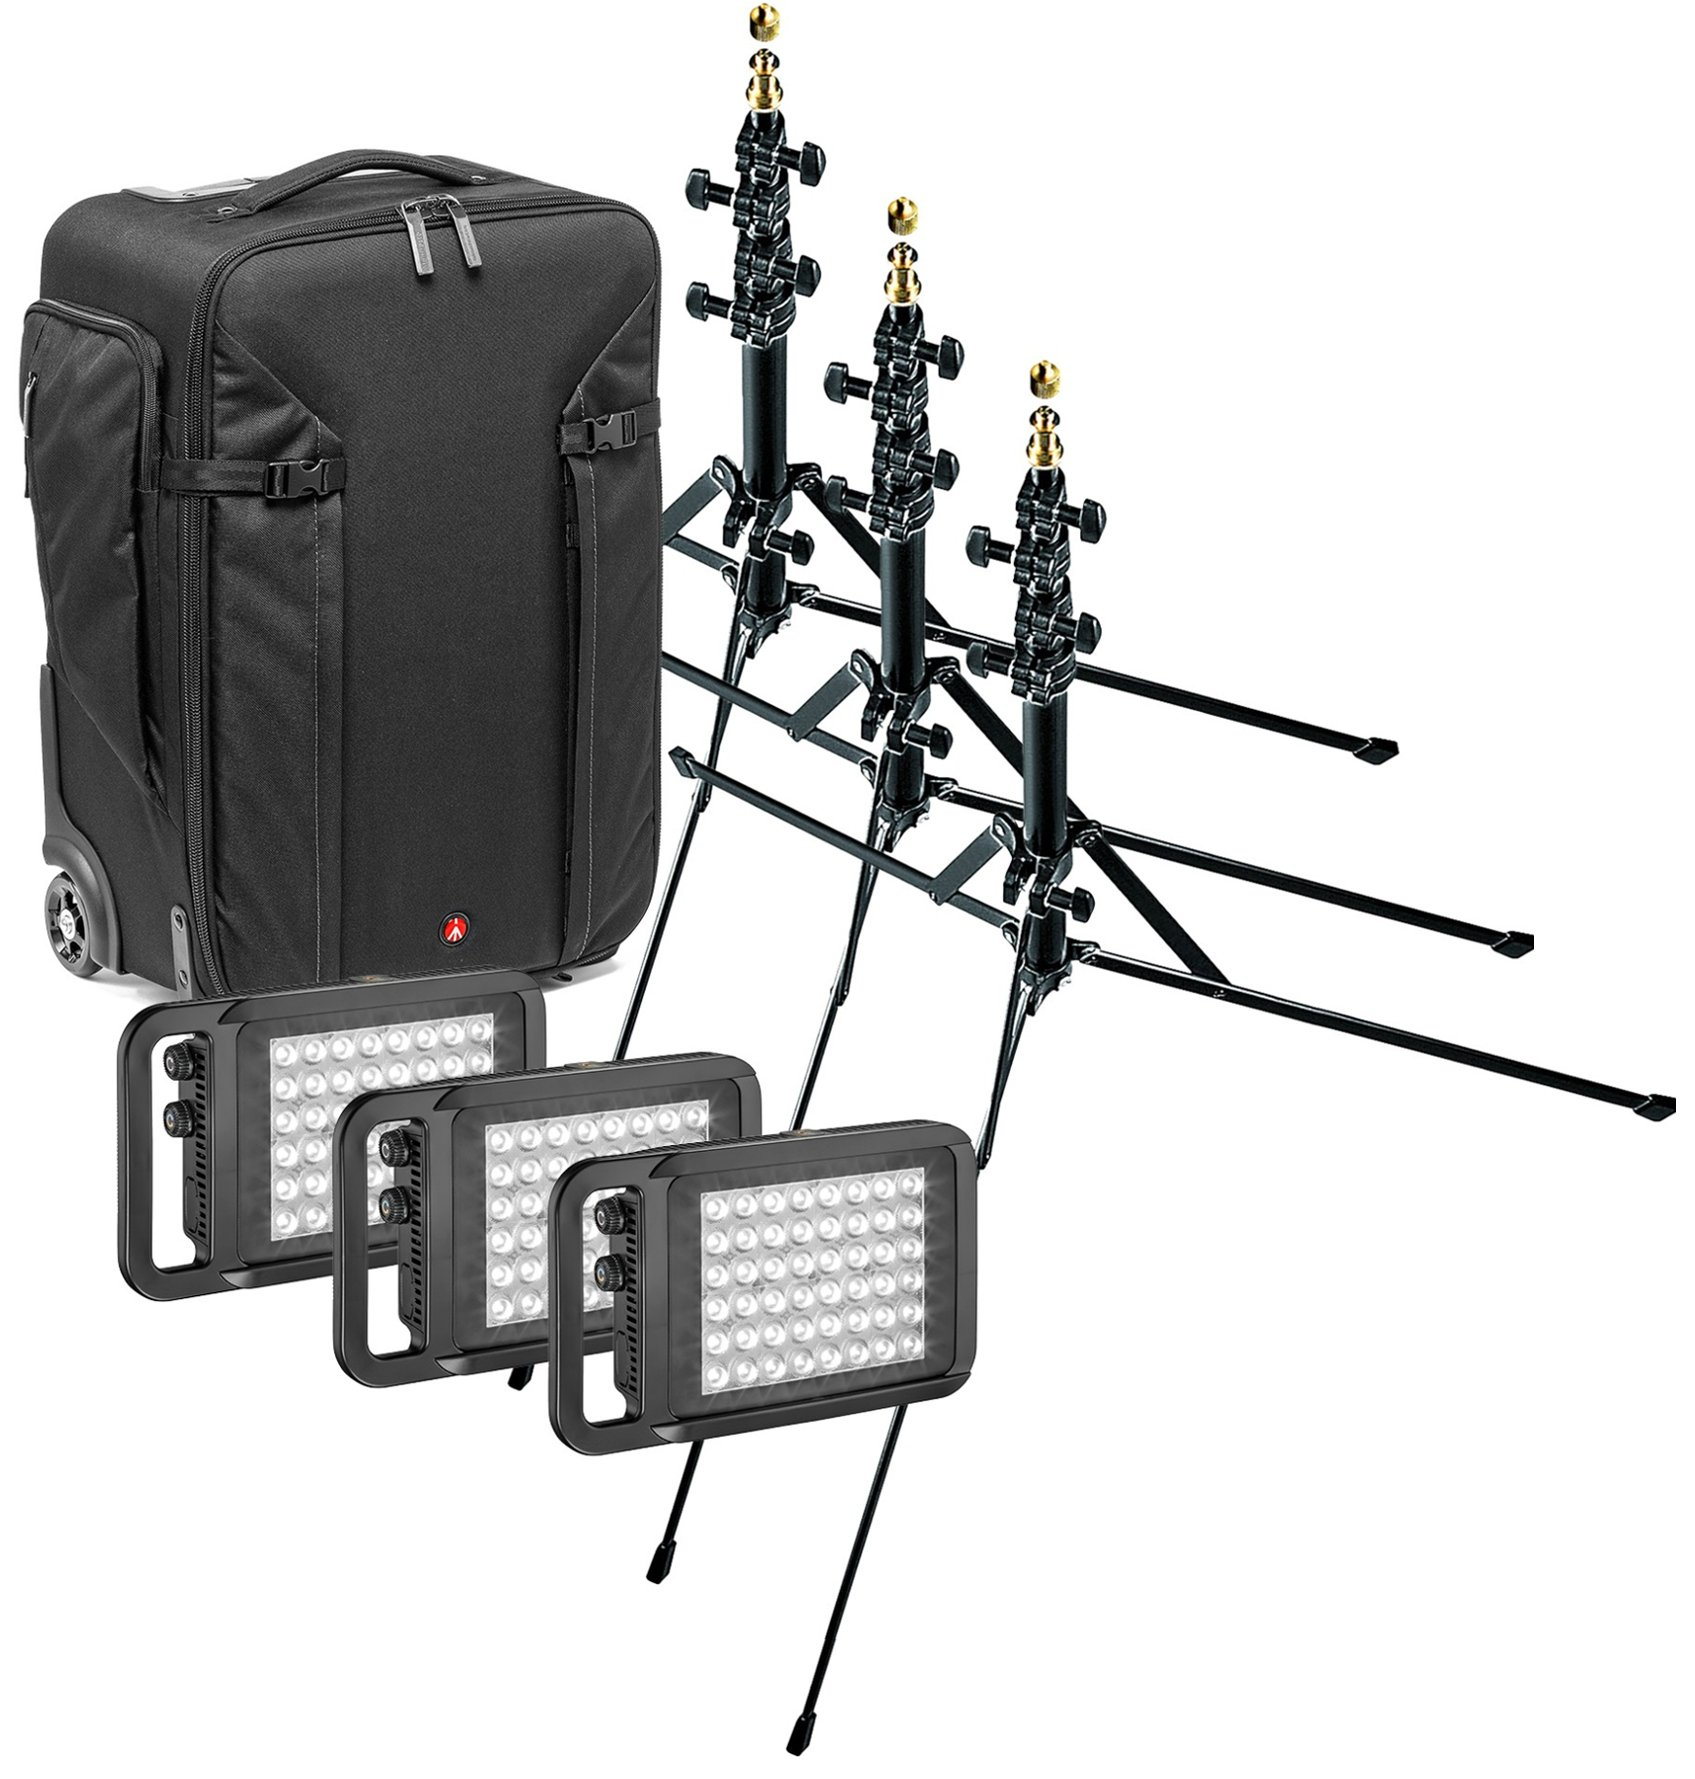 Lykos Travel Lighting Kit Bundle with Bicolor LED Panels, Stands, Bag